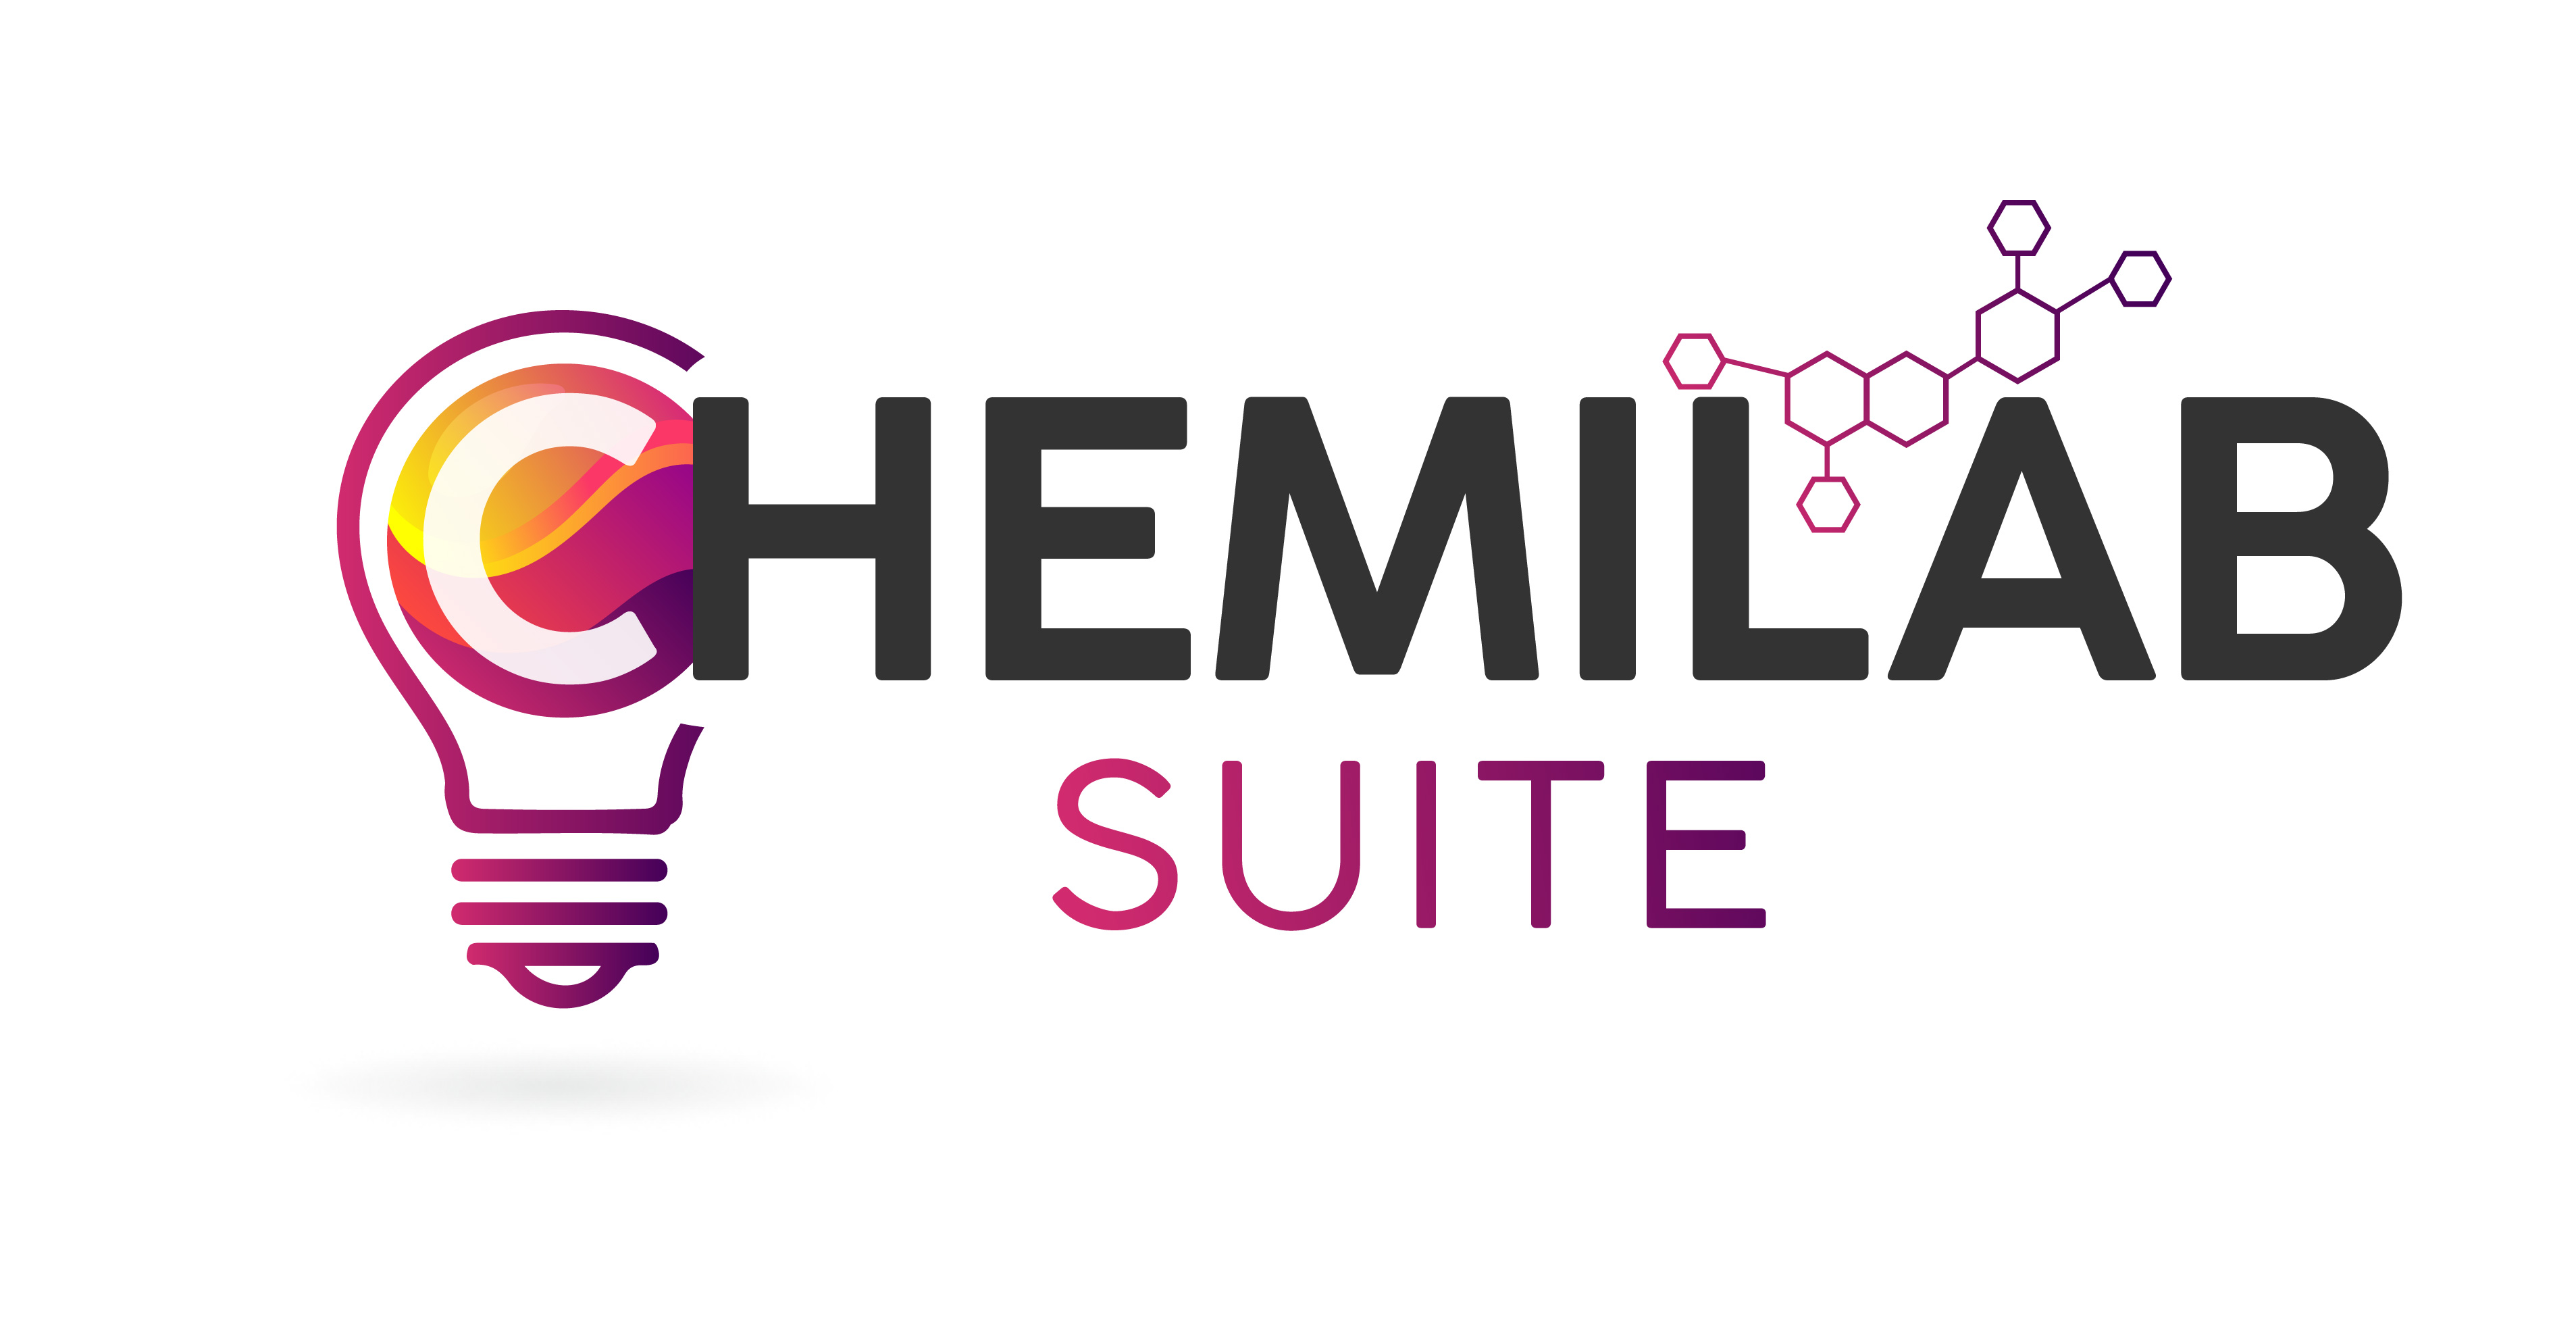 CHEMILAB SUITE cosmetic software